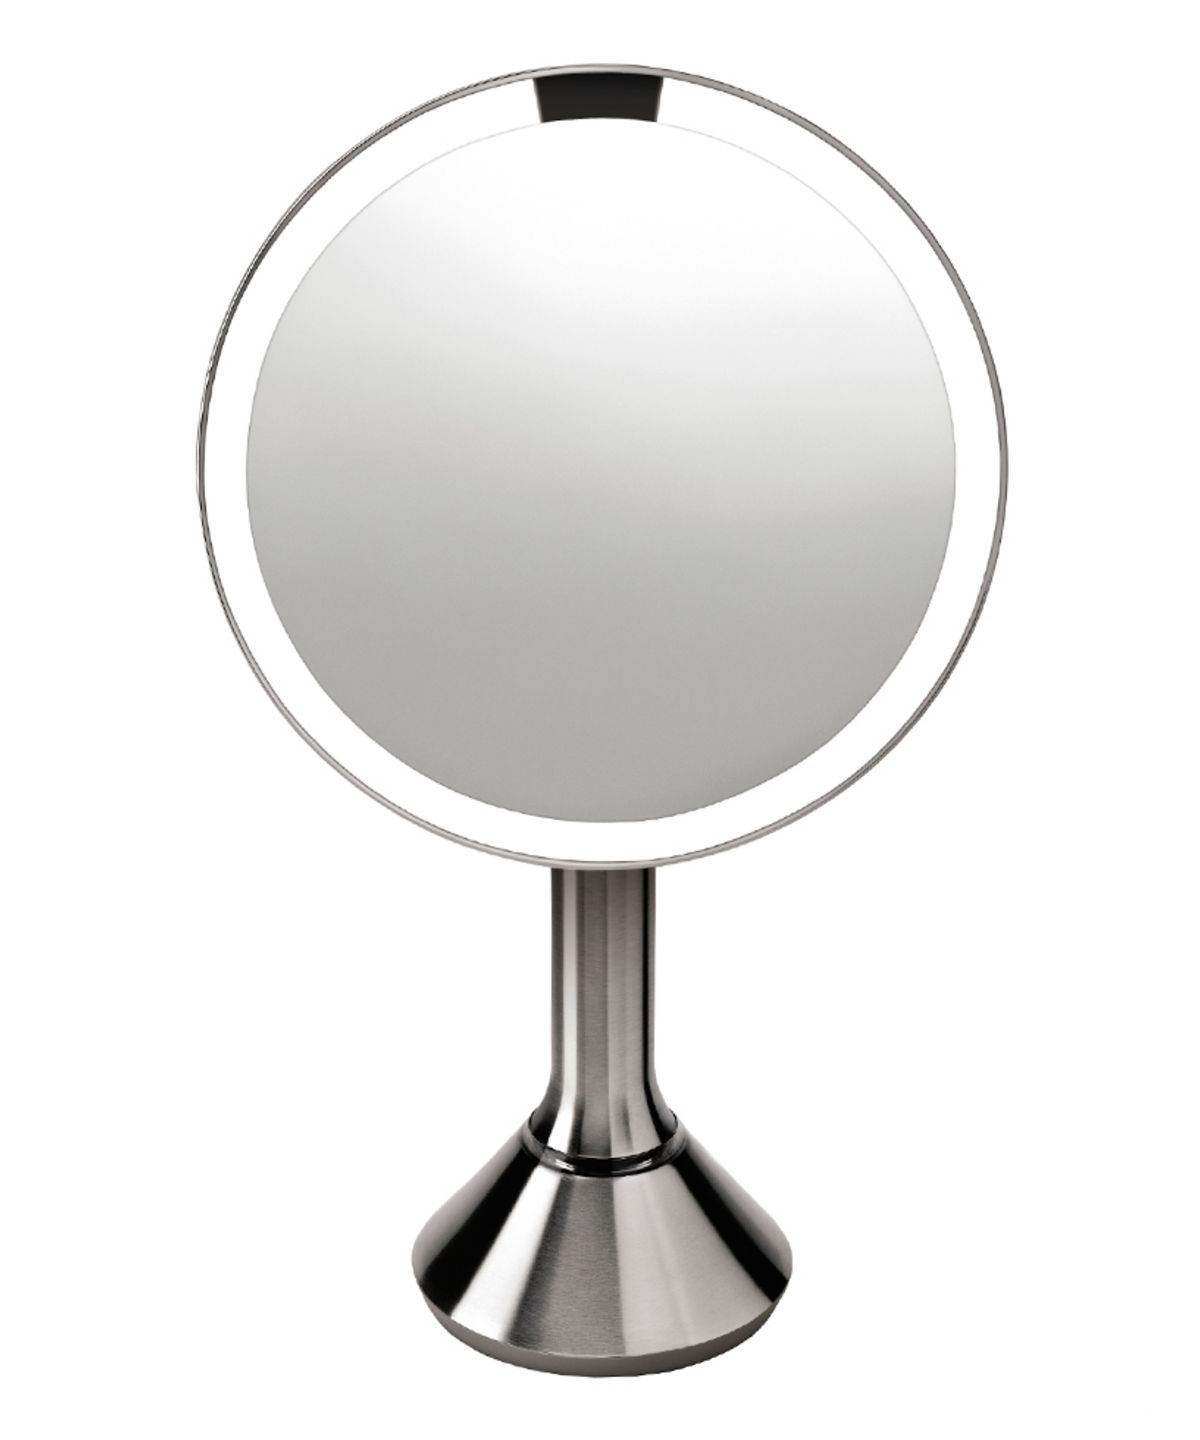 mirror.  Mirror Recipient Throughout Mirror